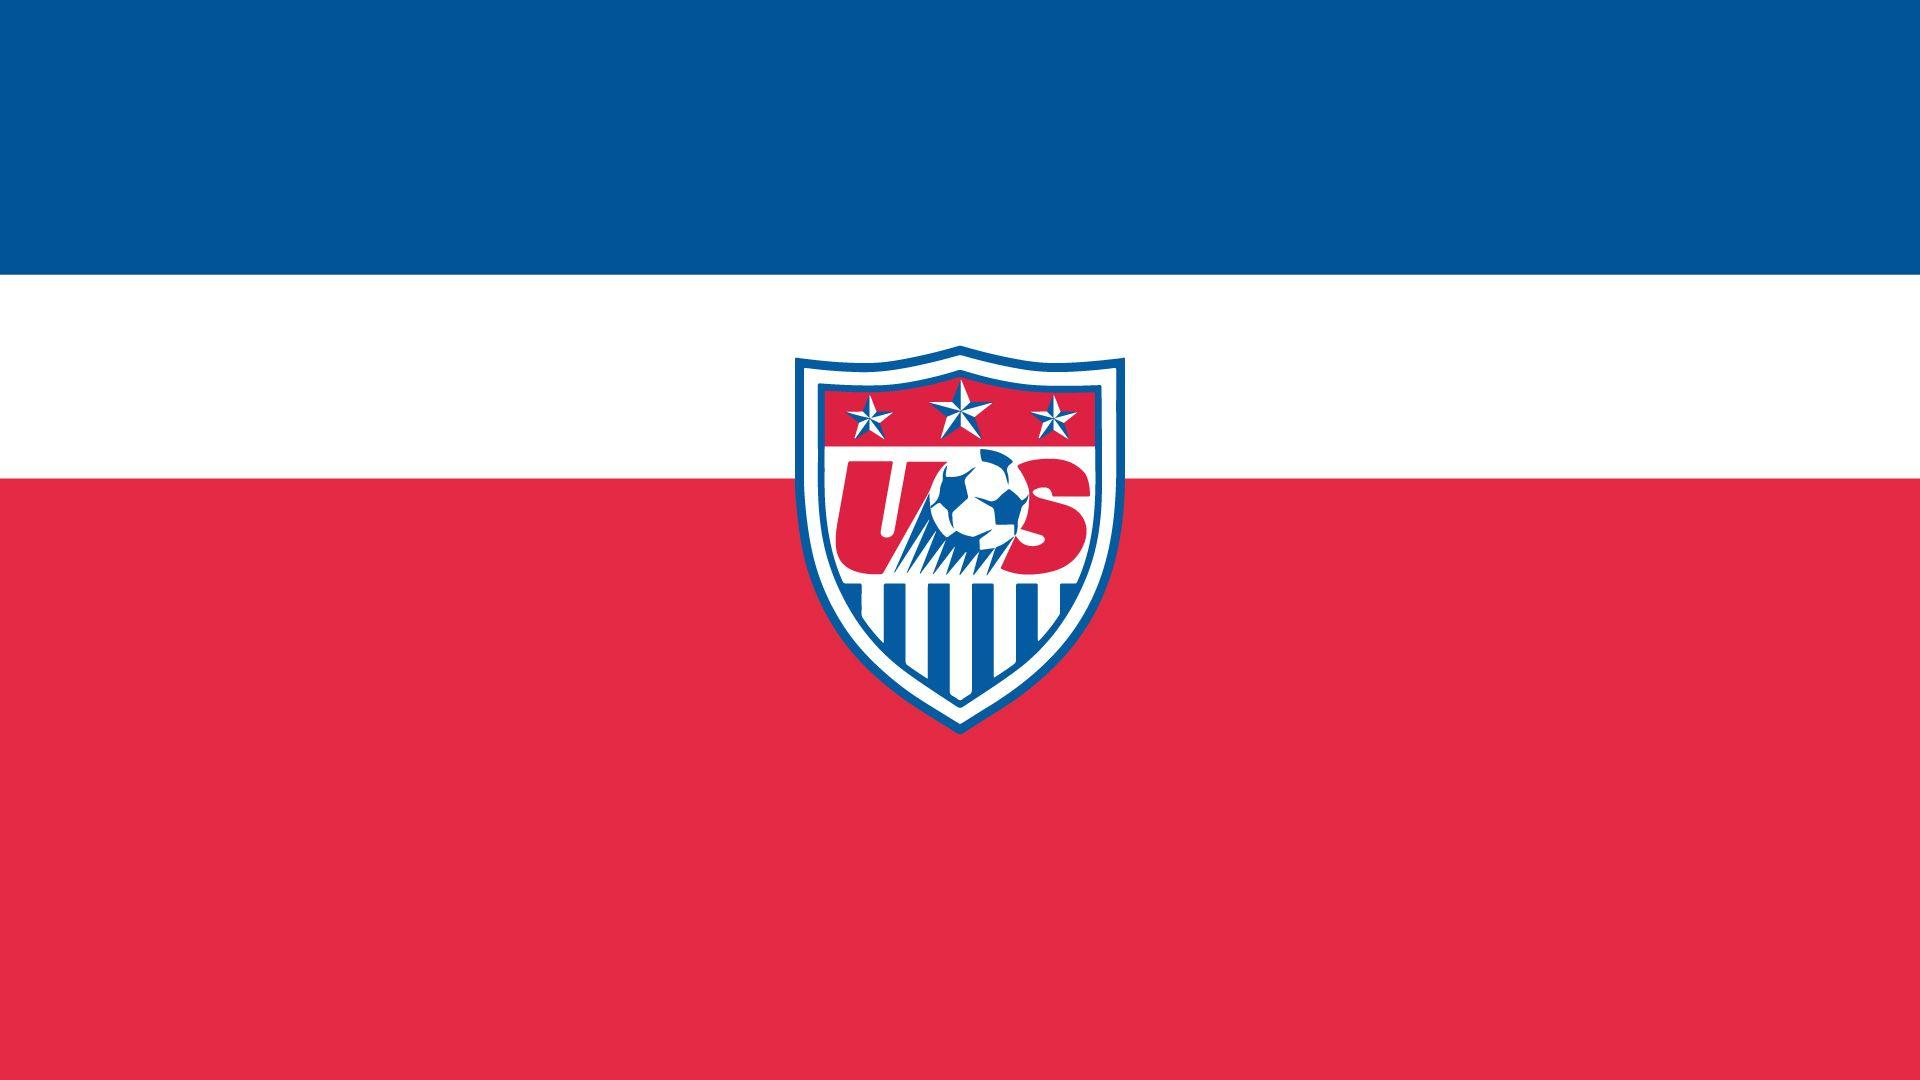 Usa soccer wallpapers 2016 wallpaper cave for Usa wallpaper